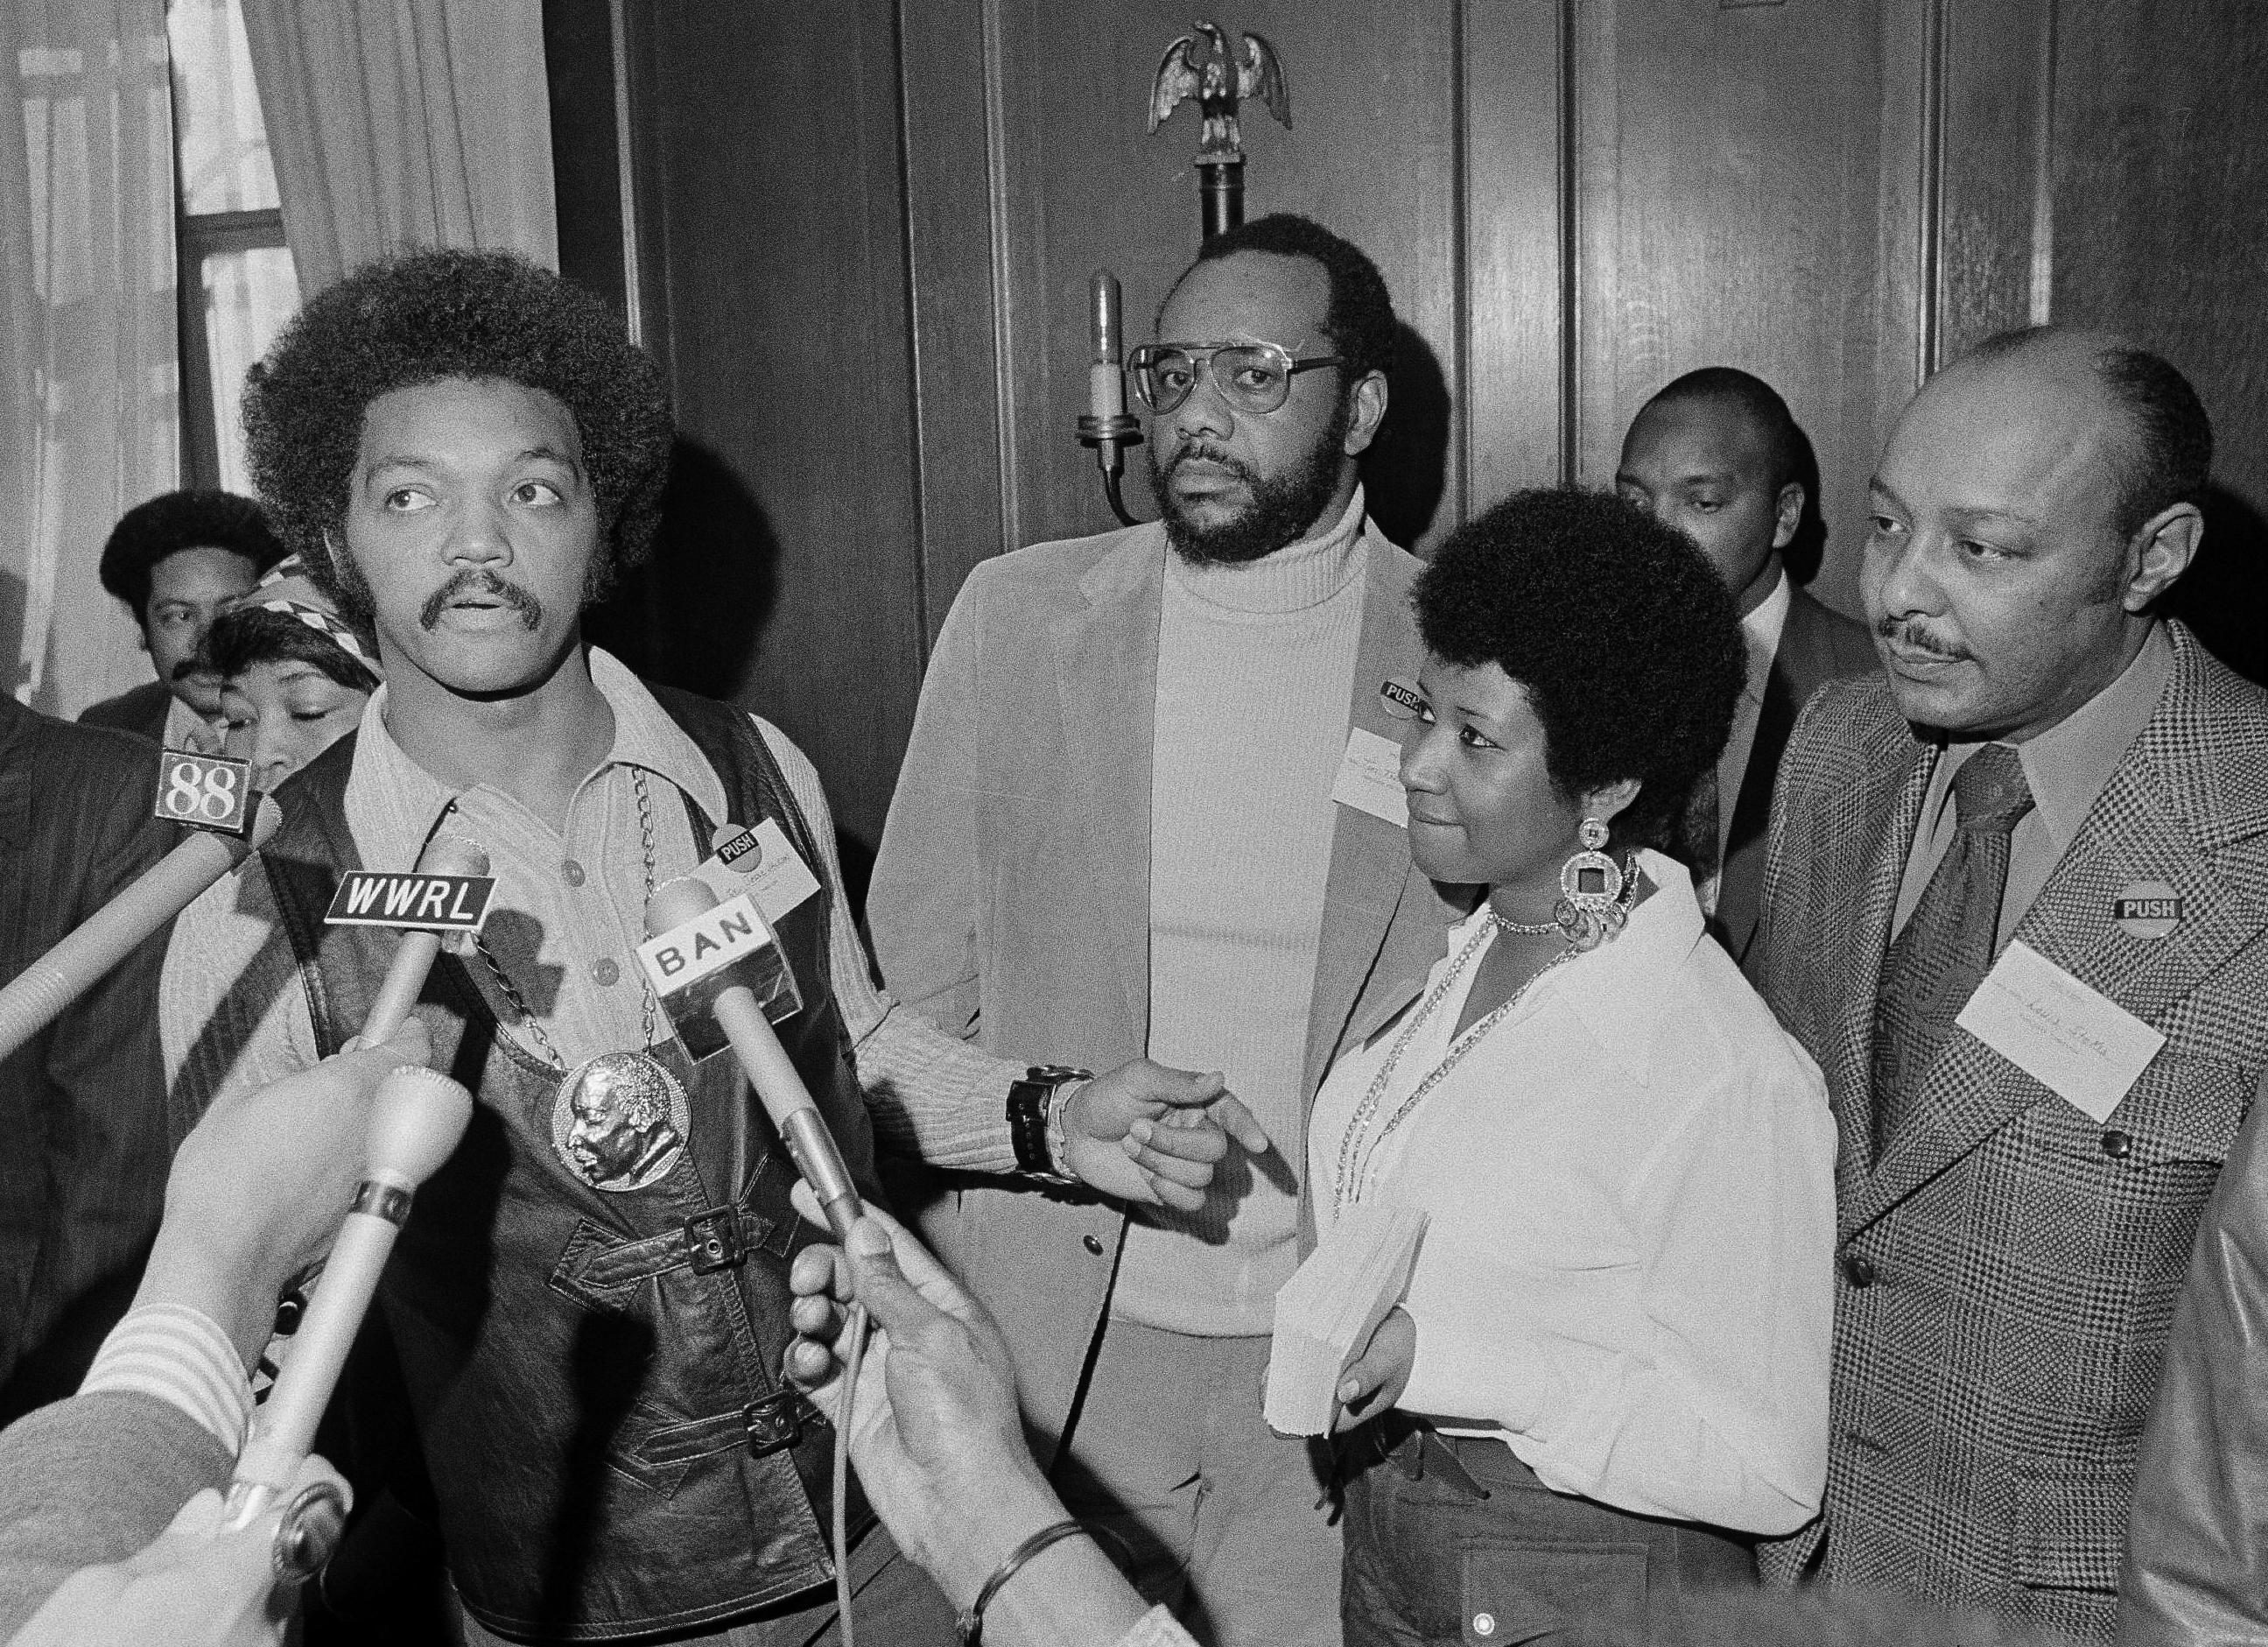 This March 26, 1972 file photo shows the Rev. Jesse Jackson speaking to reporters at the Operation PUSH Soul Picnic in New York as Tom Todd, vice president of PUSH, from second left, Aretha Franklin and Louis Stokes. Franklin died Thursday, Aug. 16, 2018 at her home in Detroit.  She was 76. (AP Photo/Jim Wells, File)